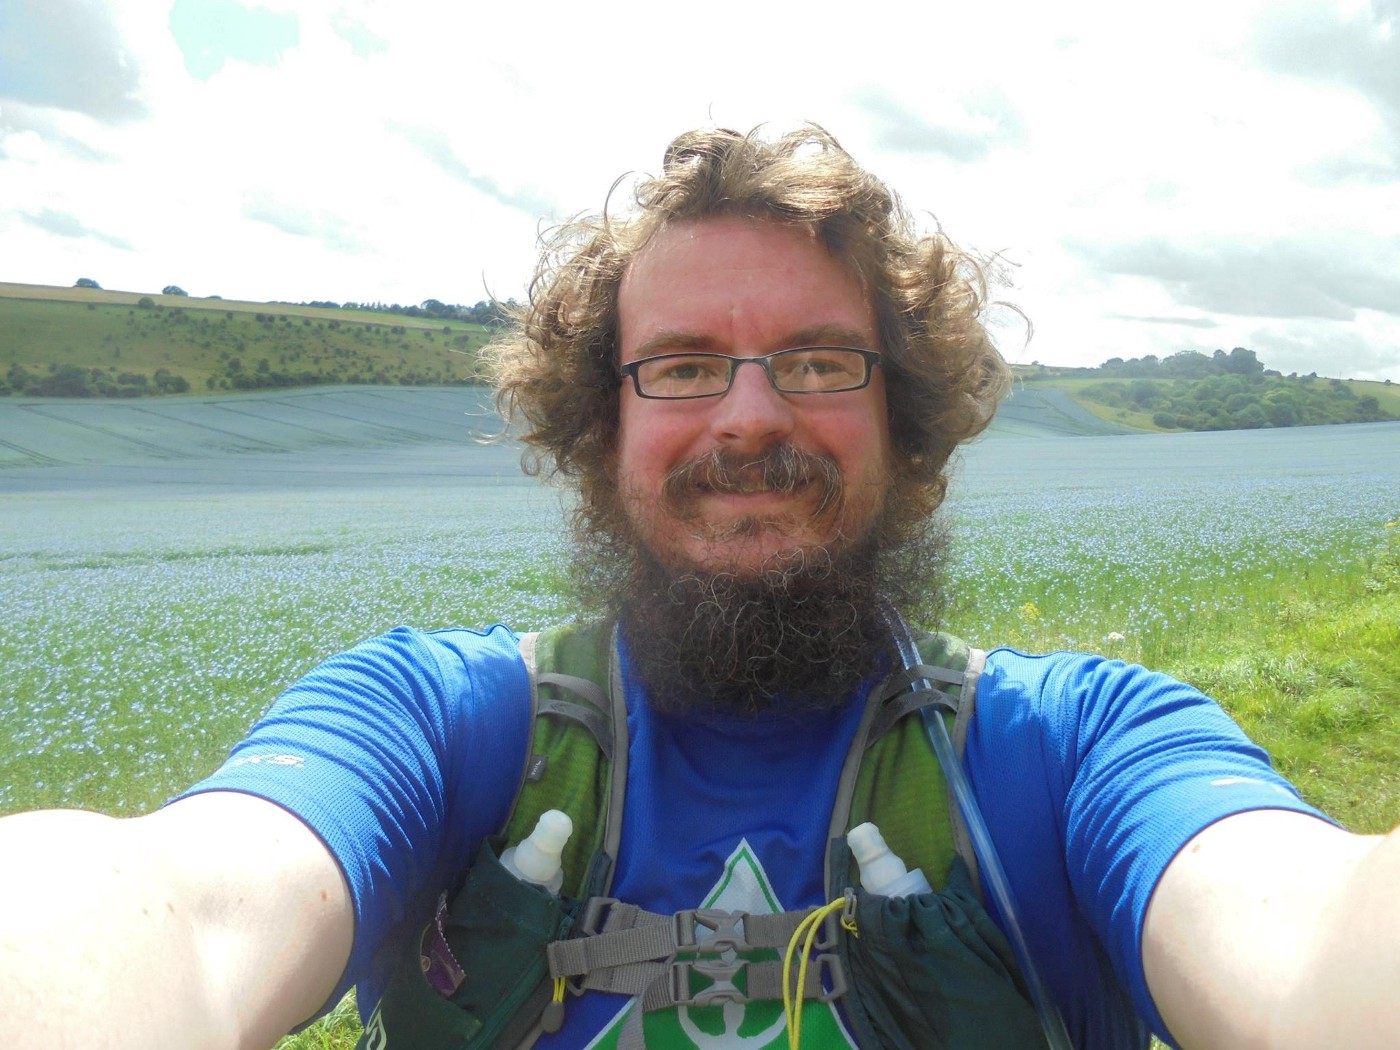 head shot of a bearded human in running kit looking into the camera with a field of cornflowers in the background